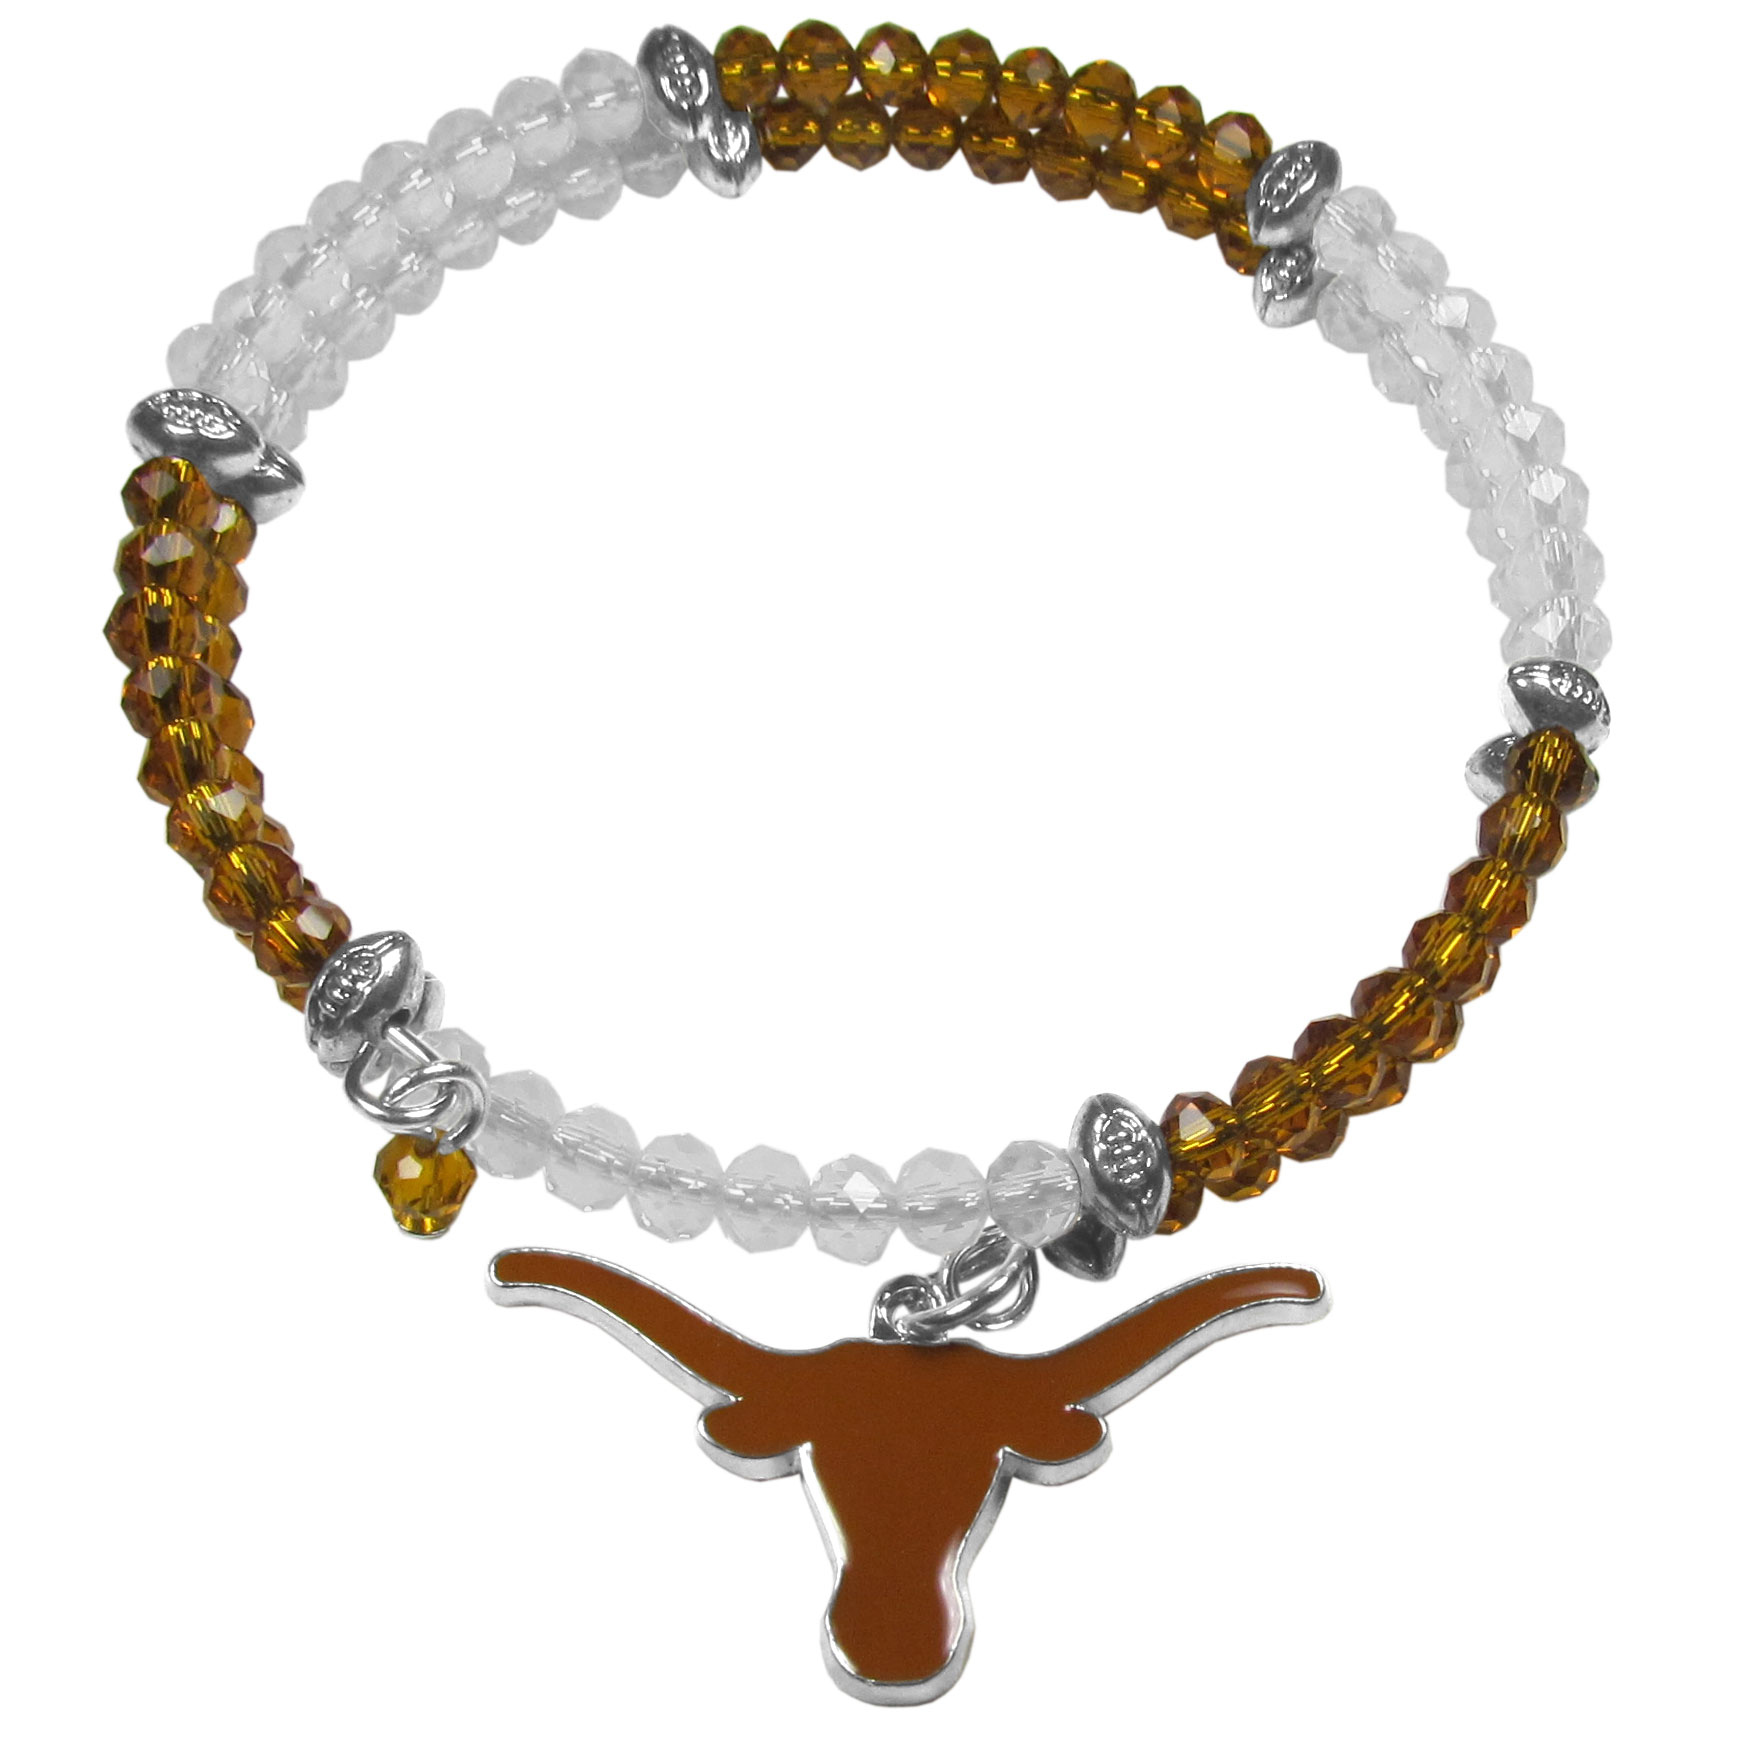 Texas Longhorns Crystal Memory Wire Bracelet - Our Texas Longhorns memory wire crystal bracelet is trendy way to show off your love of the game. The double wrap bracelet is completely covered in 4 mm crystals that are broken up with adorable football beads creating a designer look with a sporty twist. The bracelet features a fully cast, metal team charm that has expertly enameled team colors. This fashion jewelry piece is a must-have for the die-hard fan that chic look that can dress up any outfit.